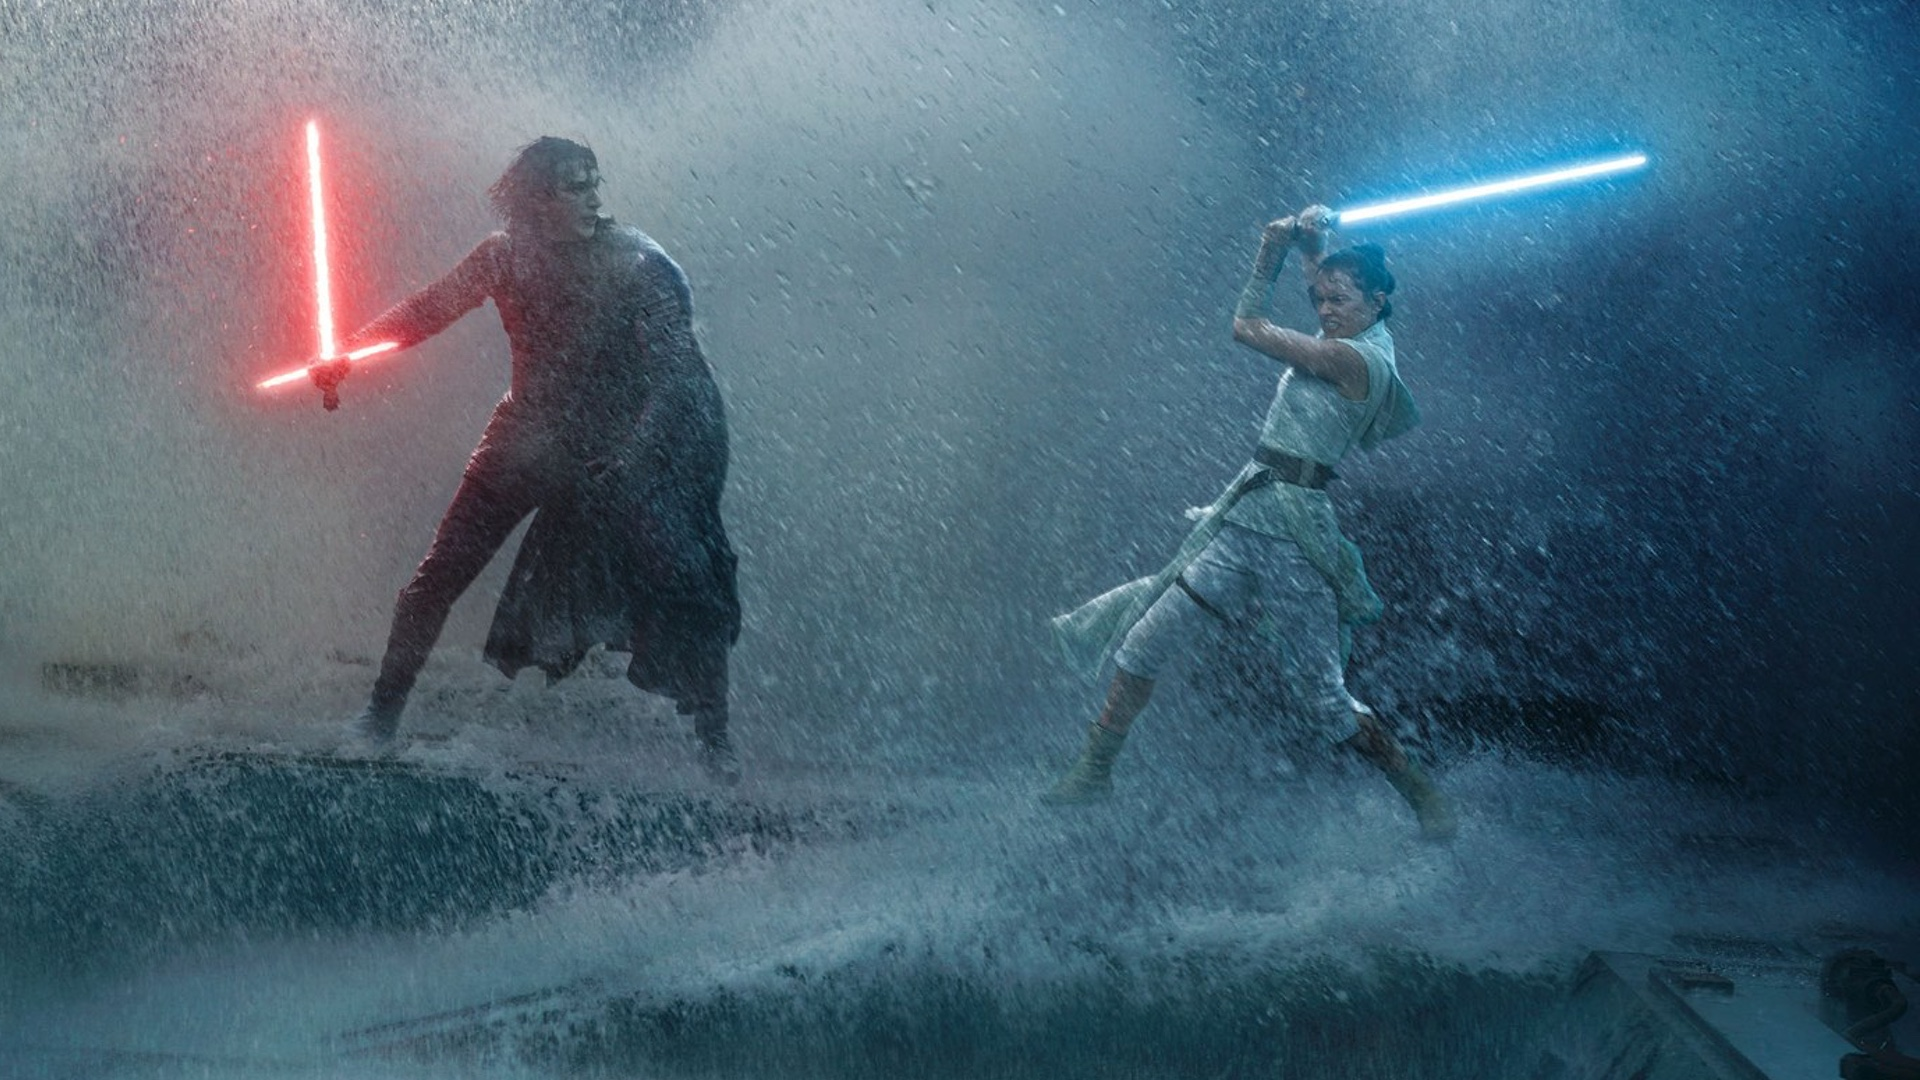 the-runtime-of-star-wars-the-rise-of-skywalker-and-details-on-the-music-score-revealed-social.jpg